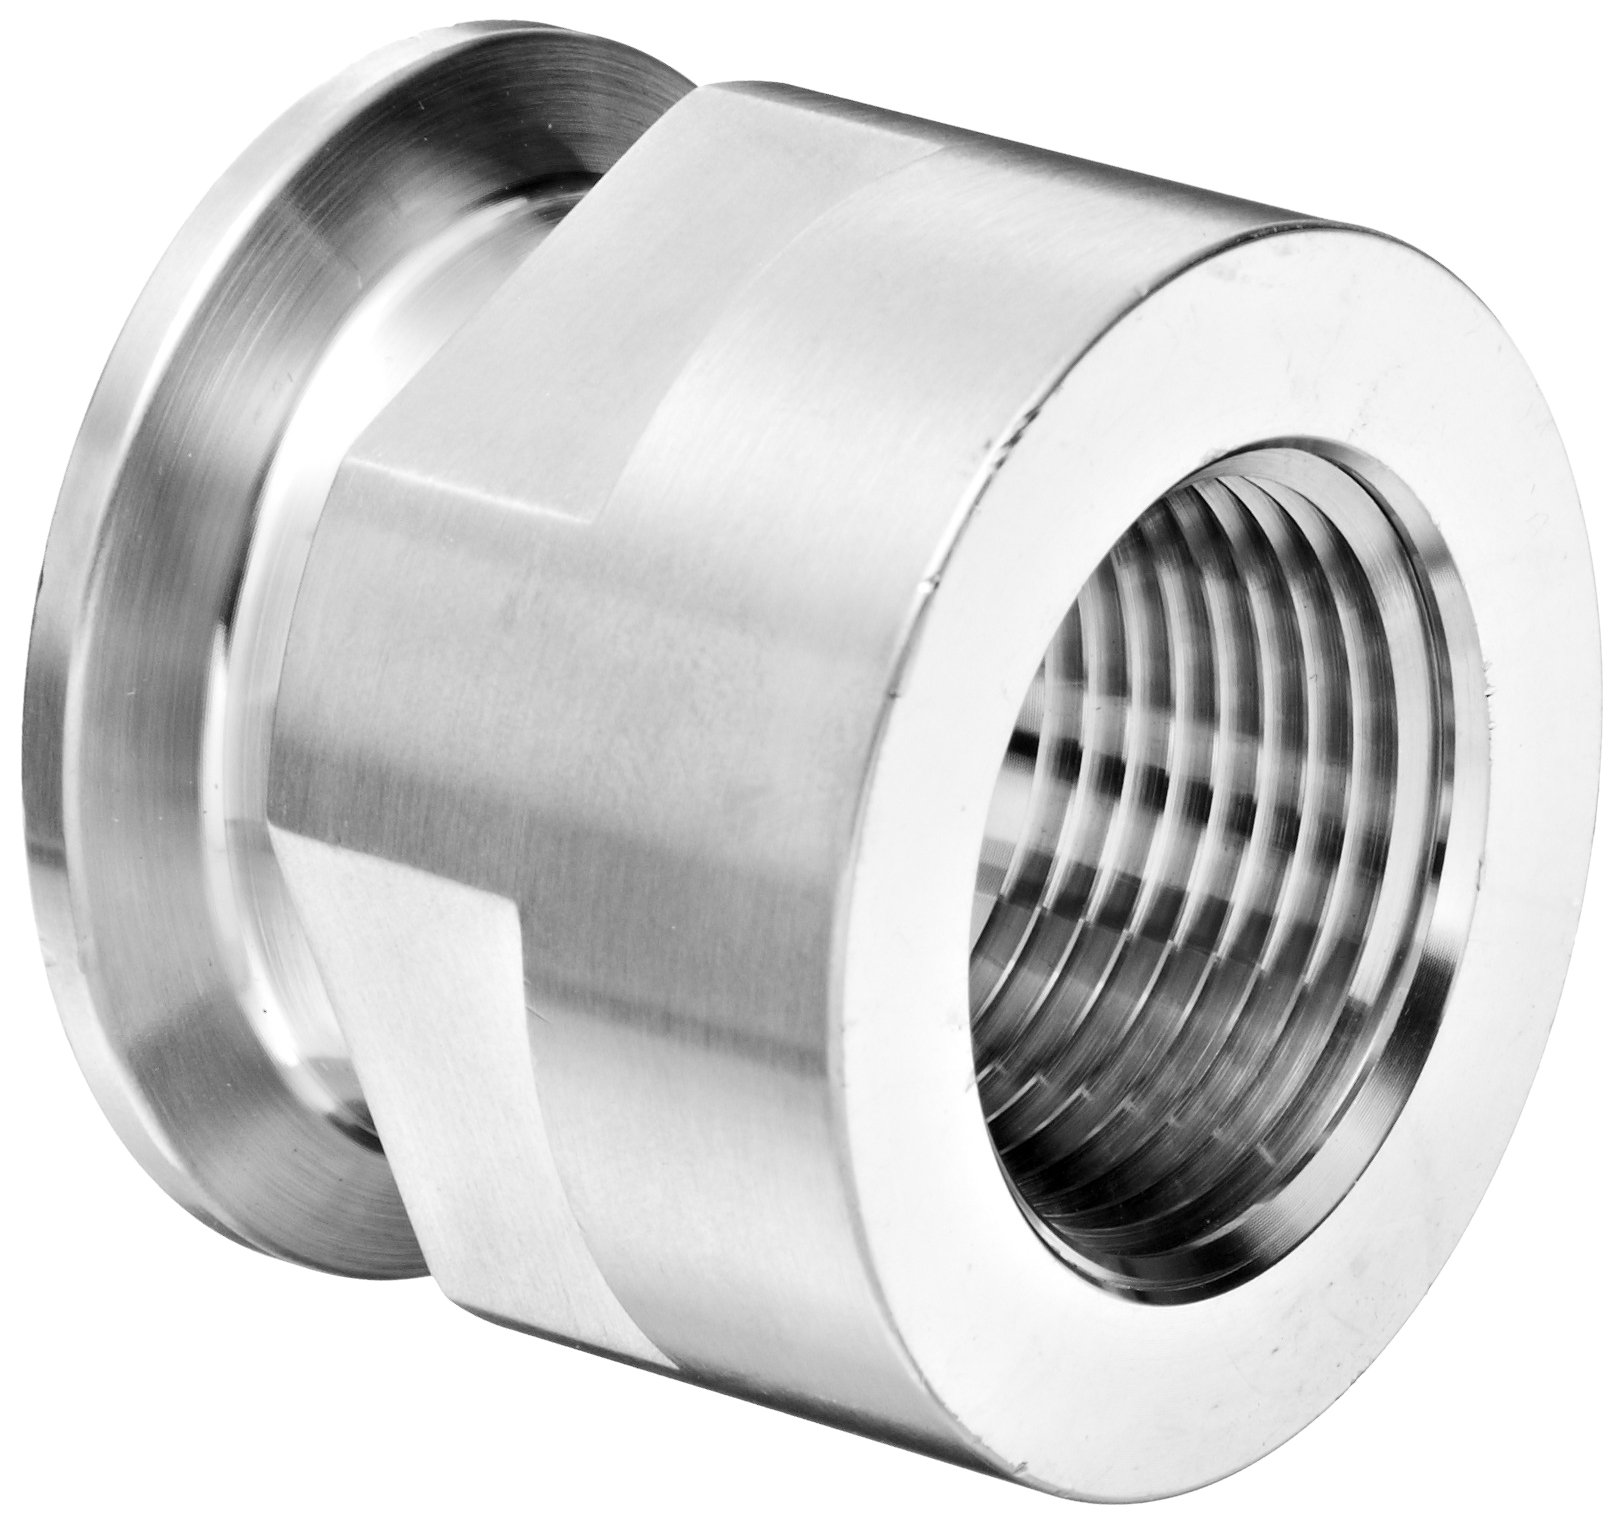 Dixon 22MP-G150100 Stainless Steel 304 Sanitary Fitting, Clamp Adapter, 1-1/2'' Tube OD x 1'' NPT Female